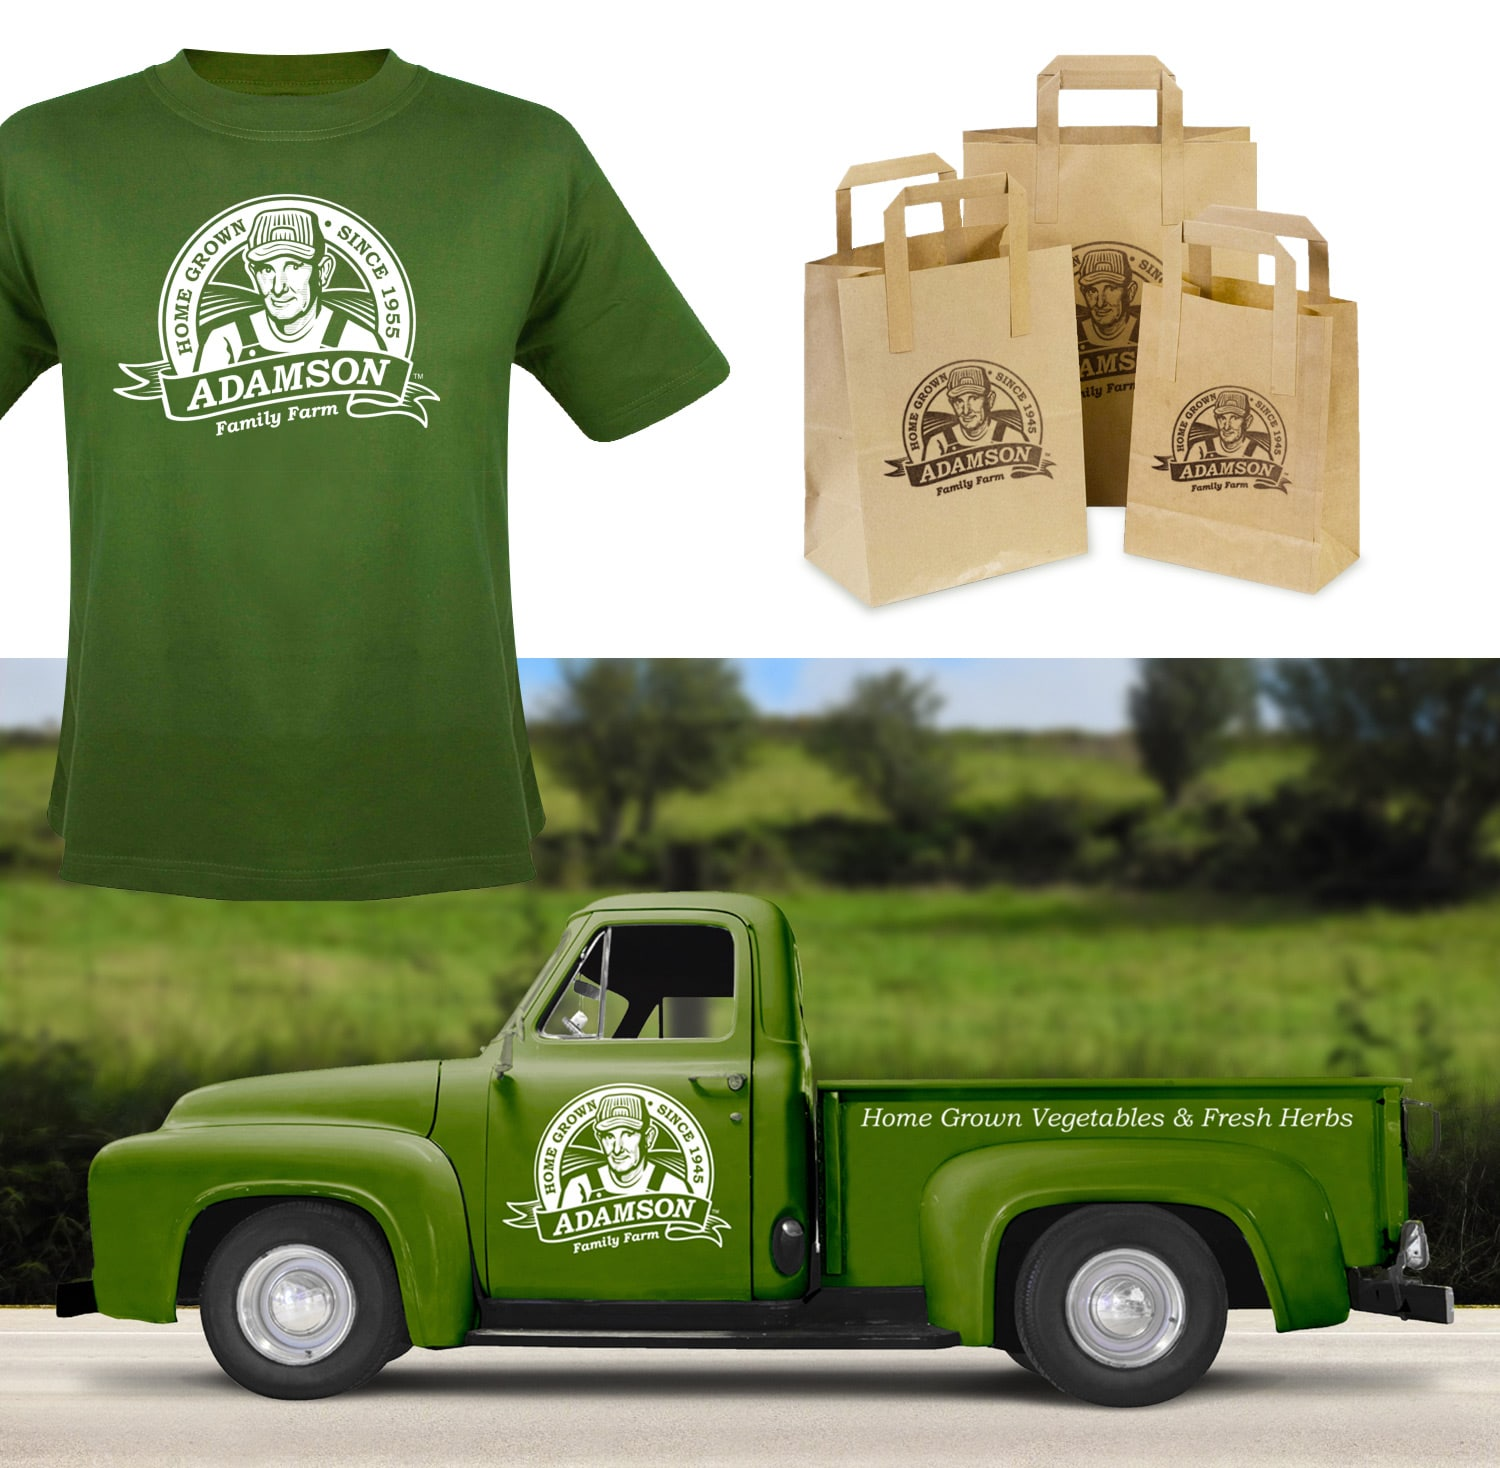 Adams Family Farm shirt, bags & truck